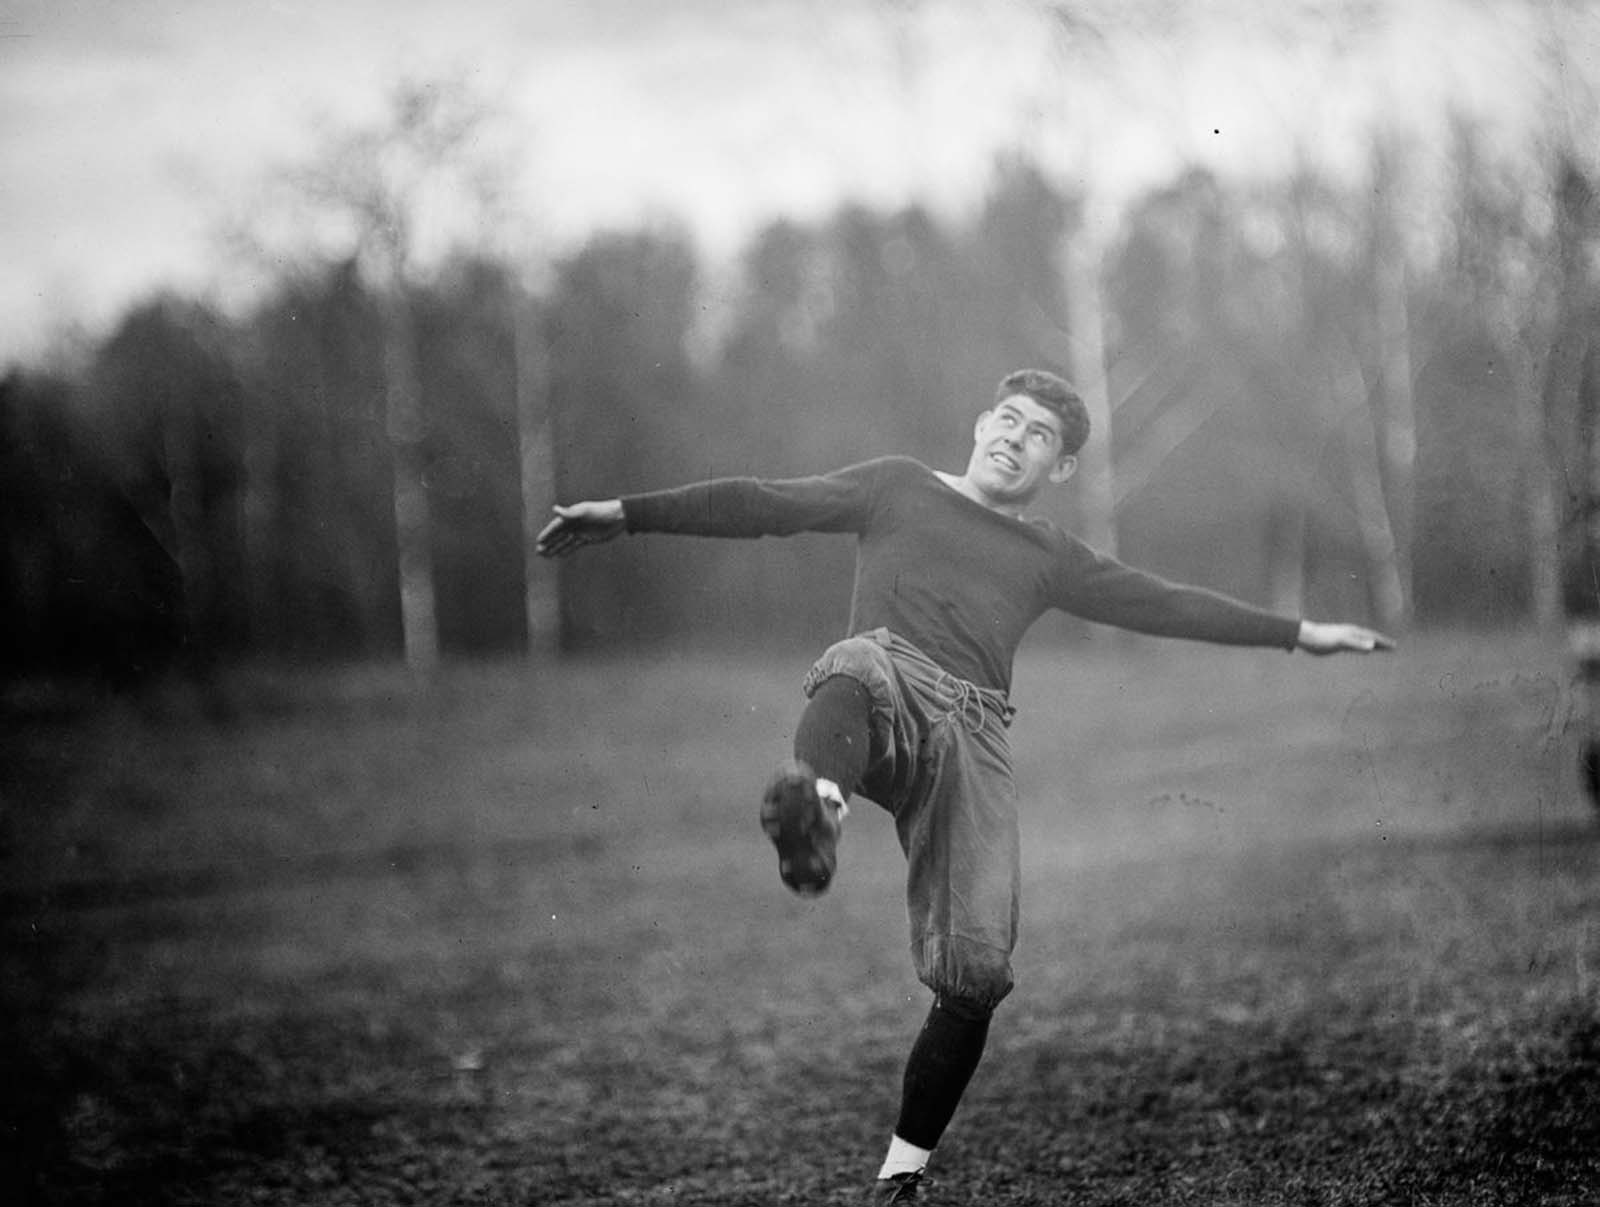 In the late 19th and early 20th centuries, gameplay developments by college coaches such as Eddie Cochems, Amos Alonzo Stagg, Parke H. Davis, Knute Rockne, and Glenn